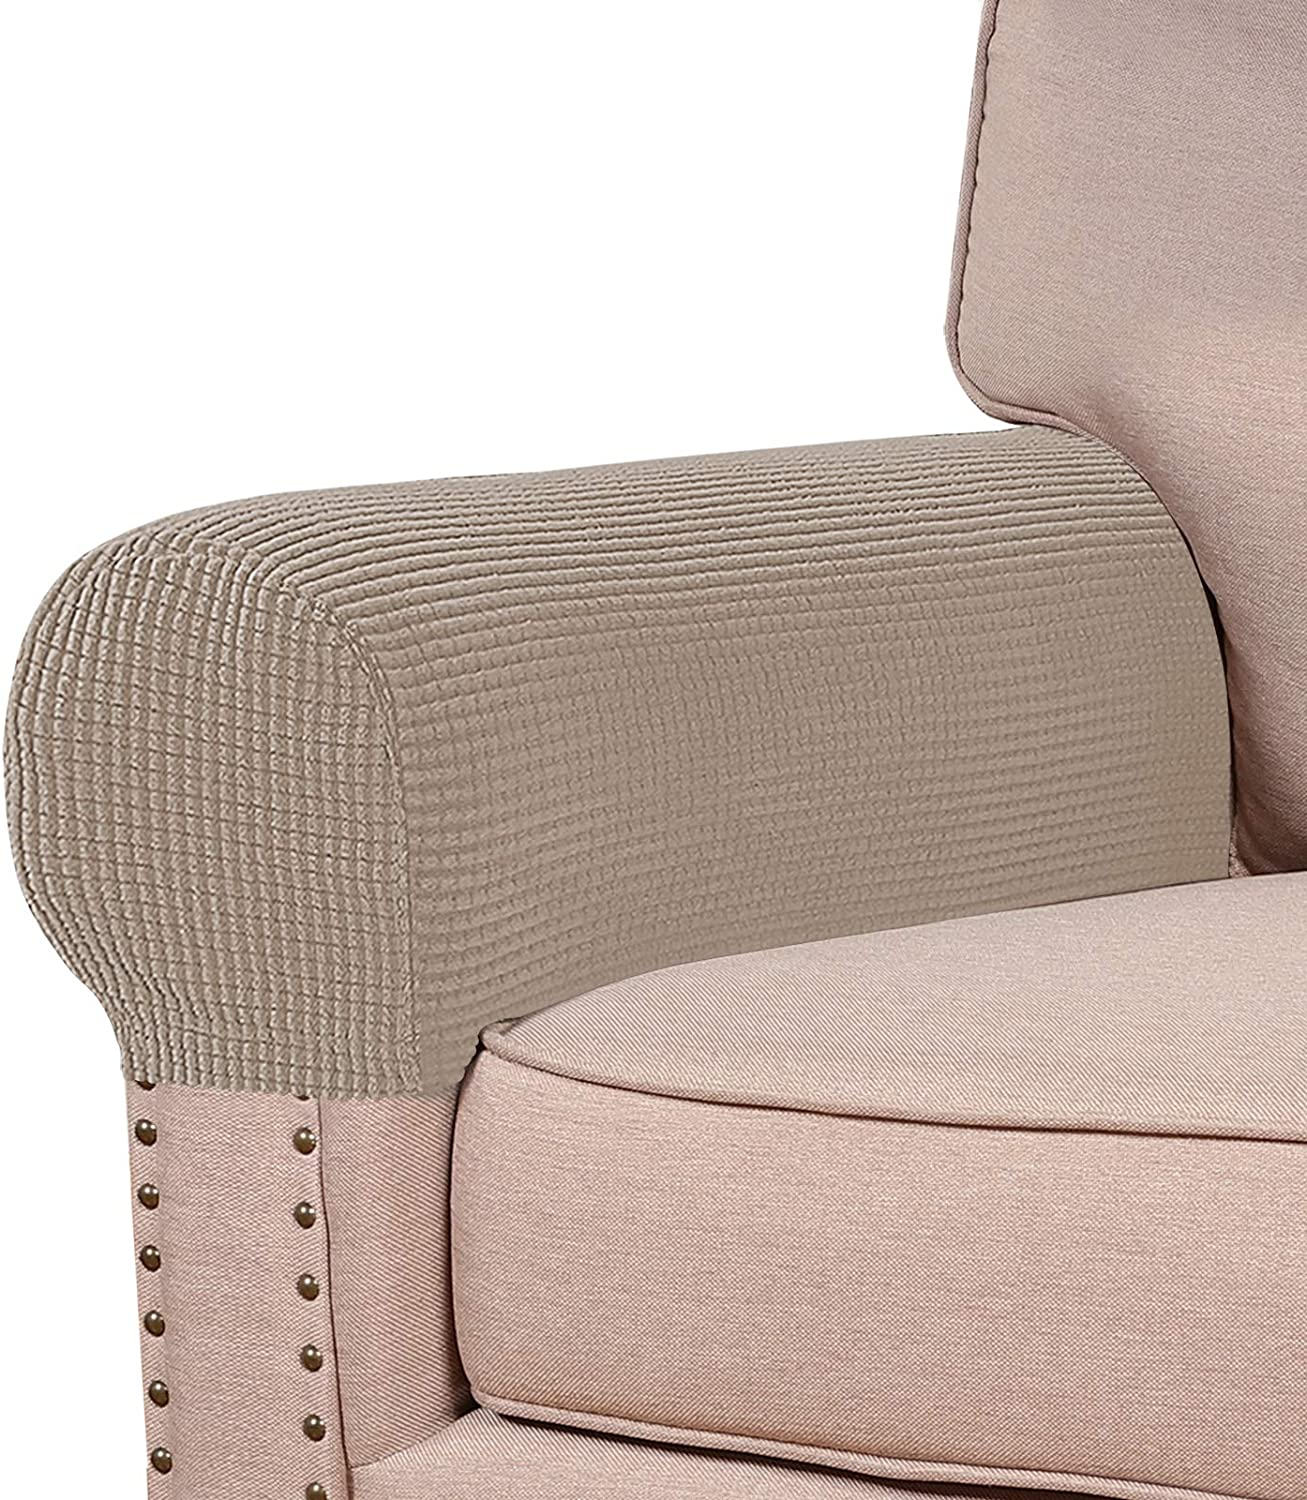 Turquoize Stretch Armrest Covers for Chairs and Sofas Couch Arm Covers for Sofa Spandex Jacquard Armrest Covers Anti-Slip Furniture Protector Washable Armchair Slipcovers for Recliner Set of 4, Sand